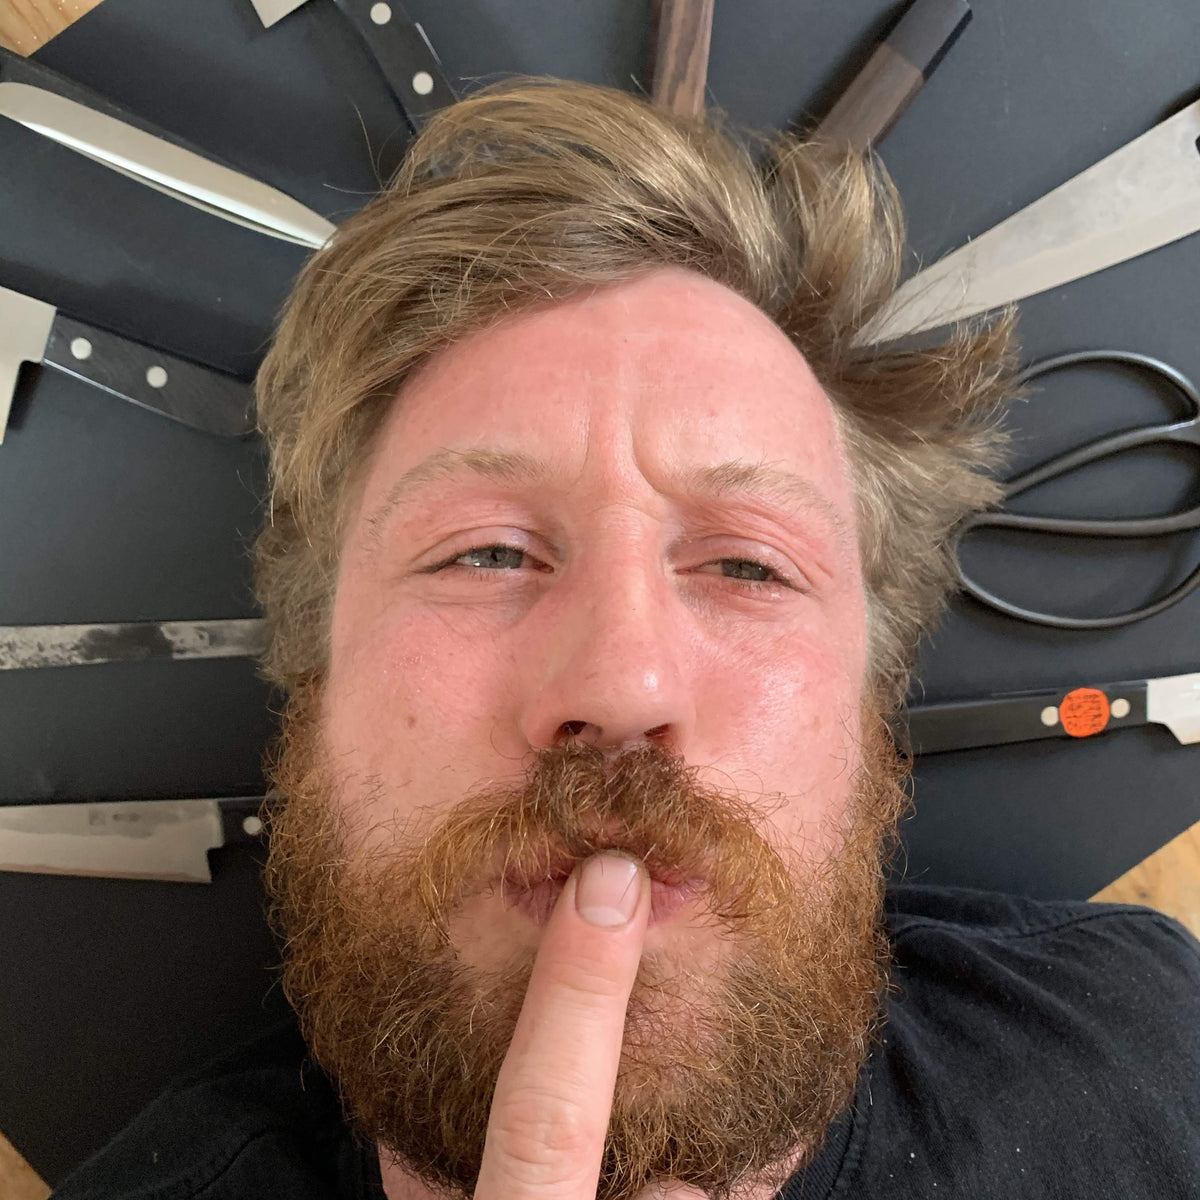 Knife consultation with Tom Saunders - ON THE PHONE